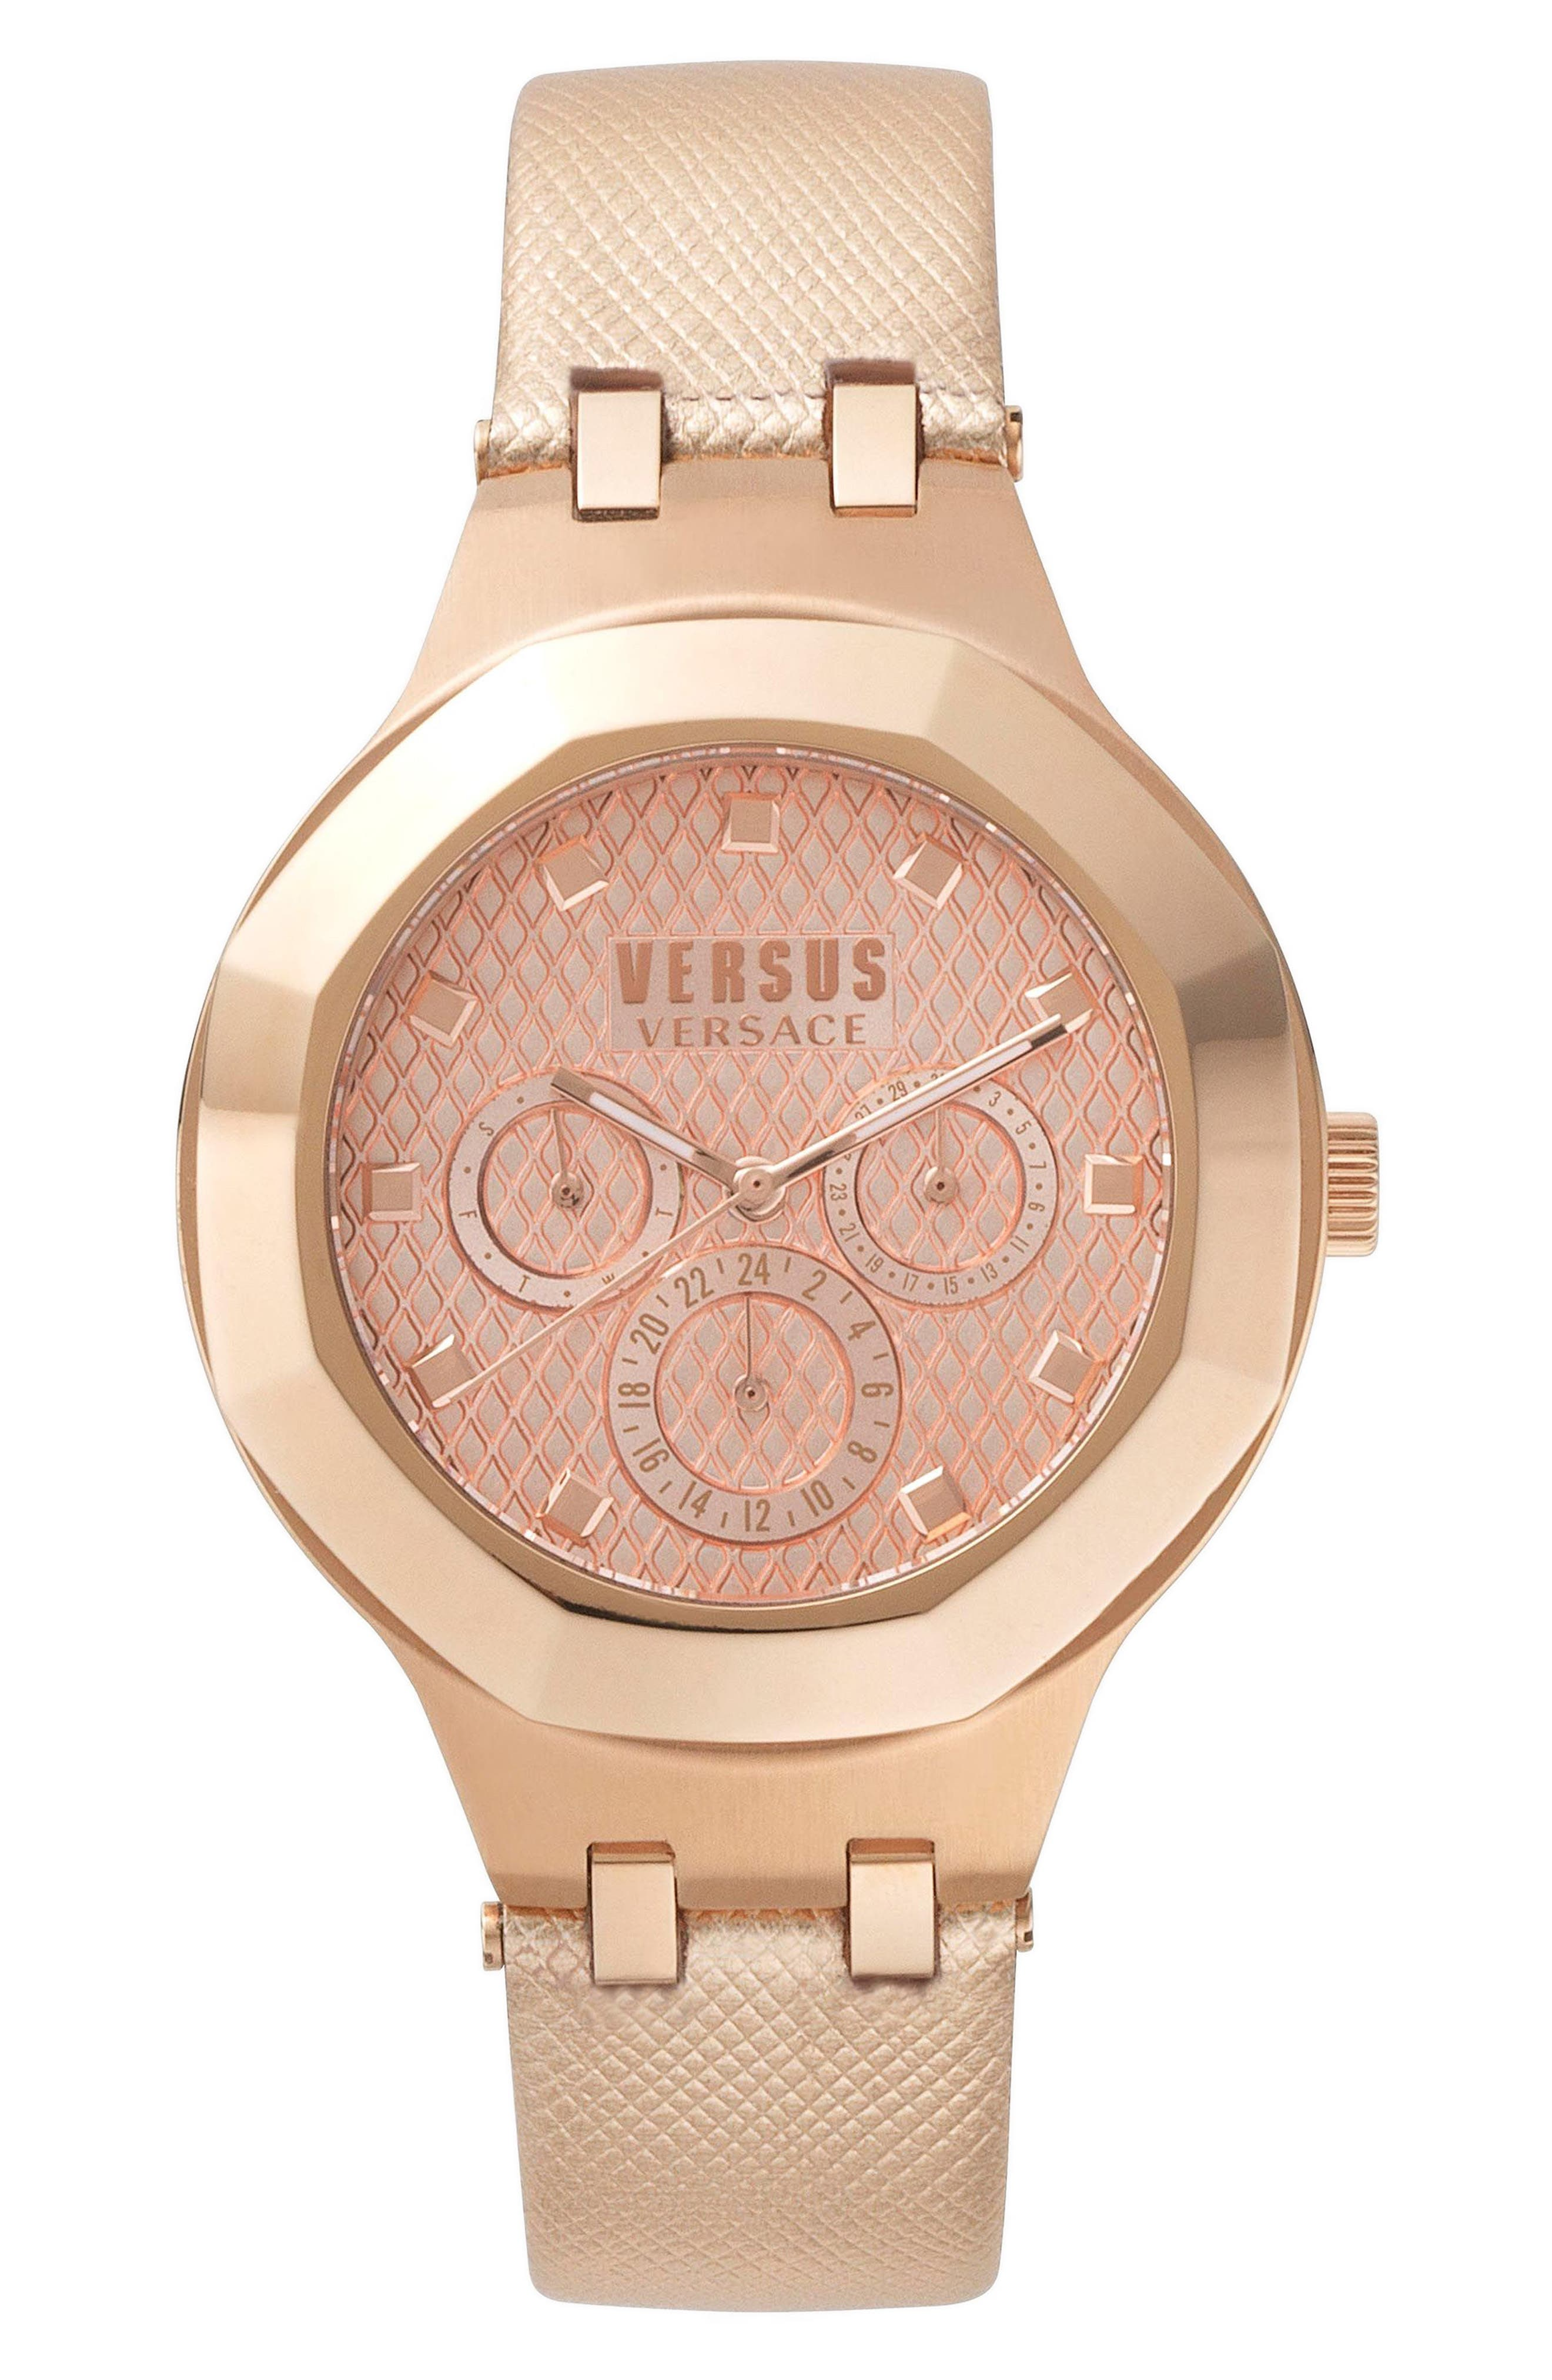 VERSUS by Versace Laguna City Multifunction Leather Strap Watch, 40mm,                             Main thumbnail 3, color,